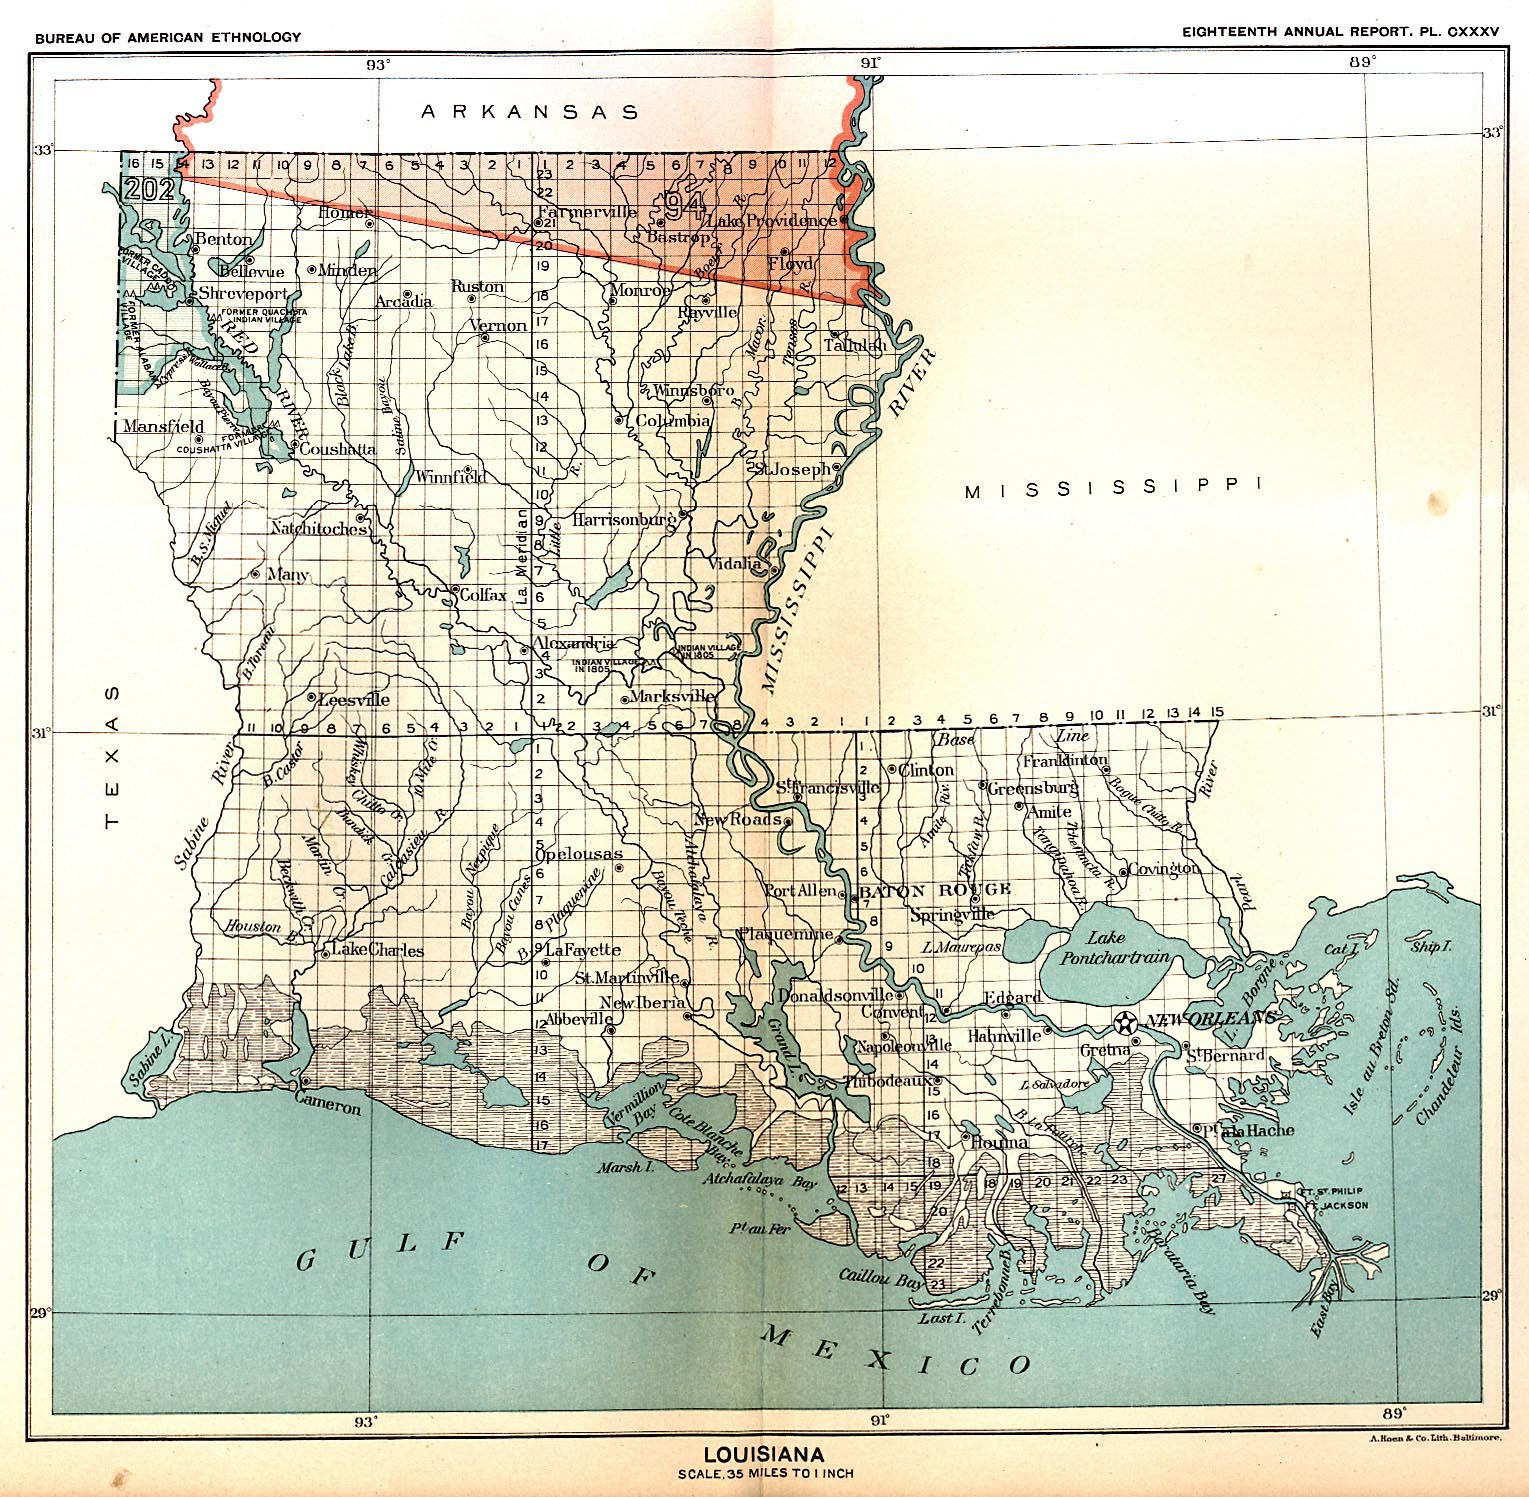 Indian Land Cessions Maps And Treaties In Arkansas Indian Territory - Historic maps louisiana